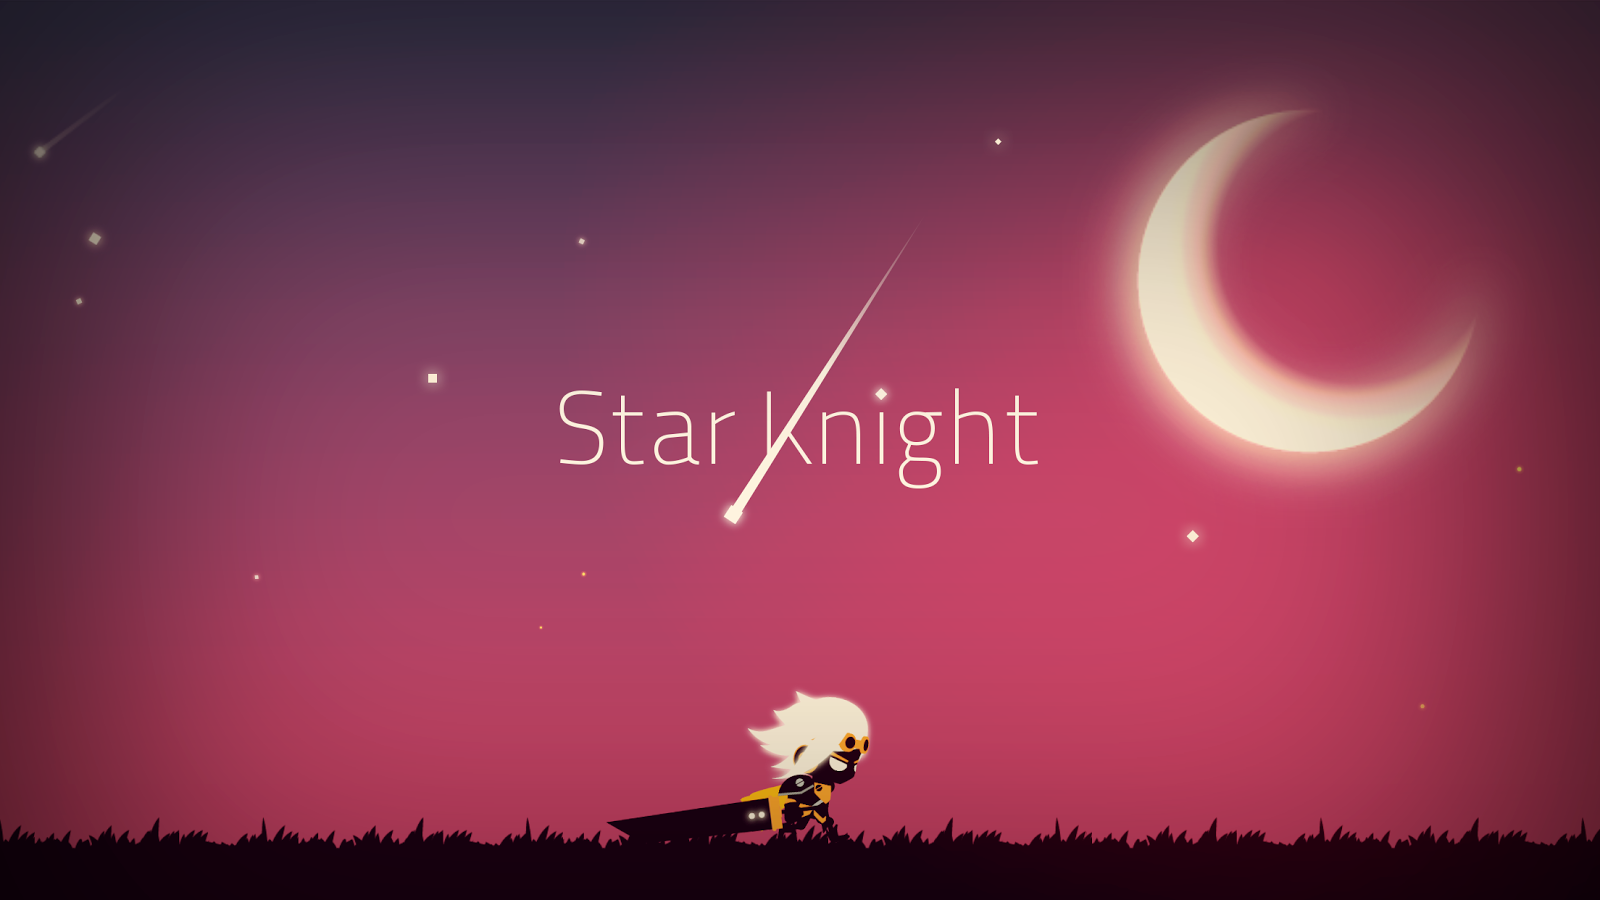 Star Knight Screenshot 6